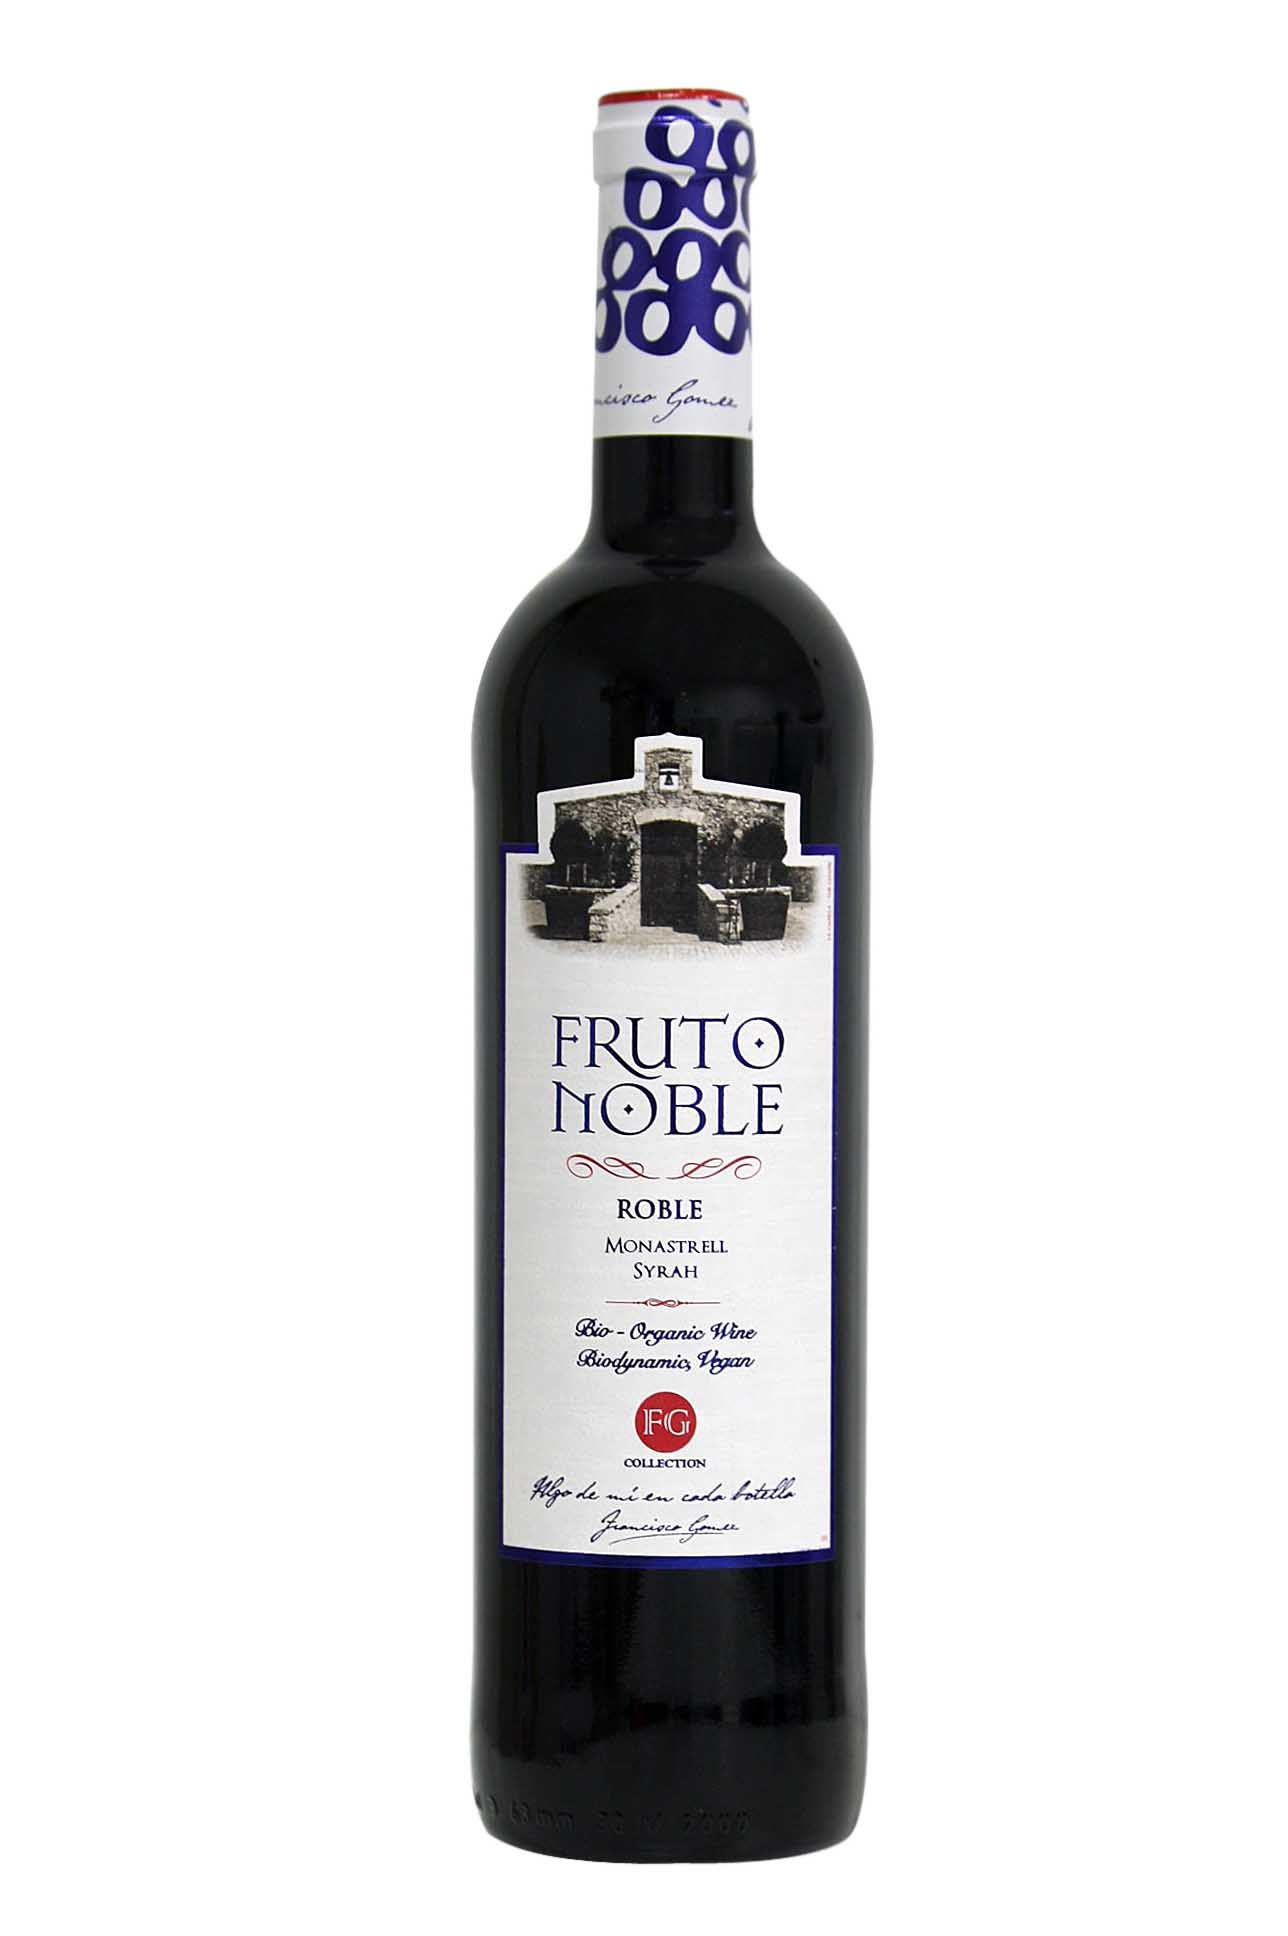 Fruto noble organic red wine